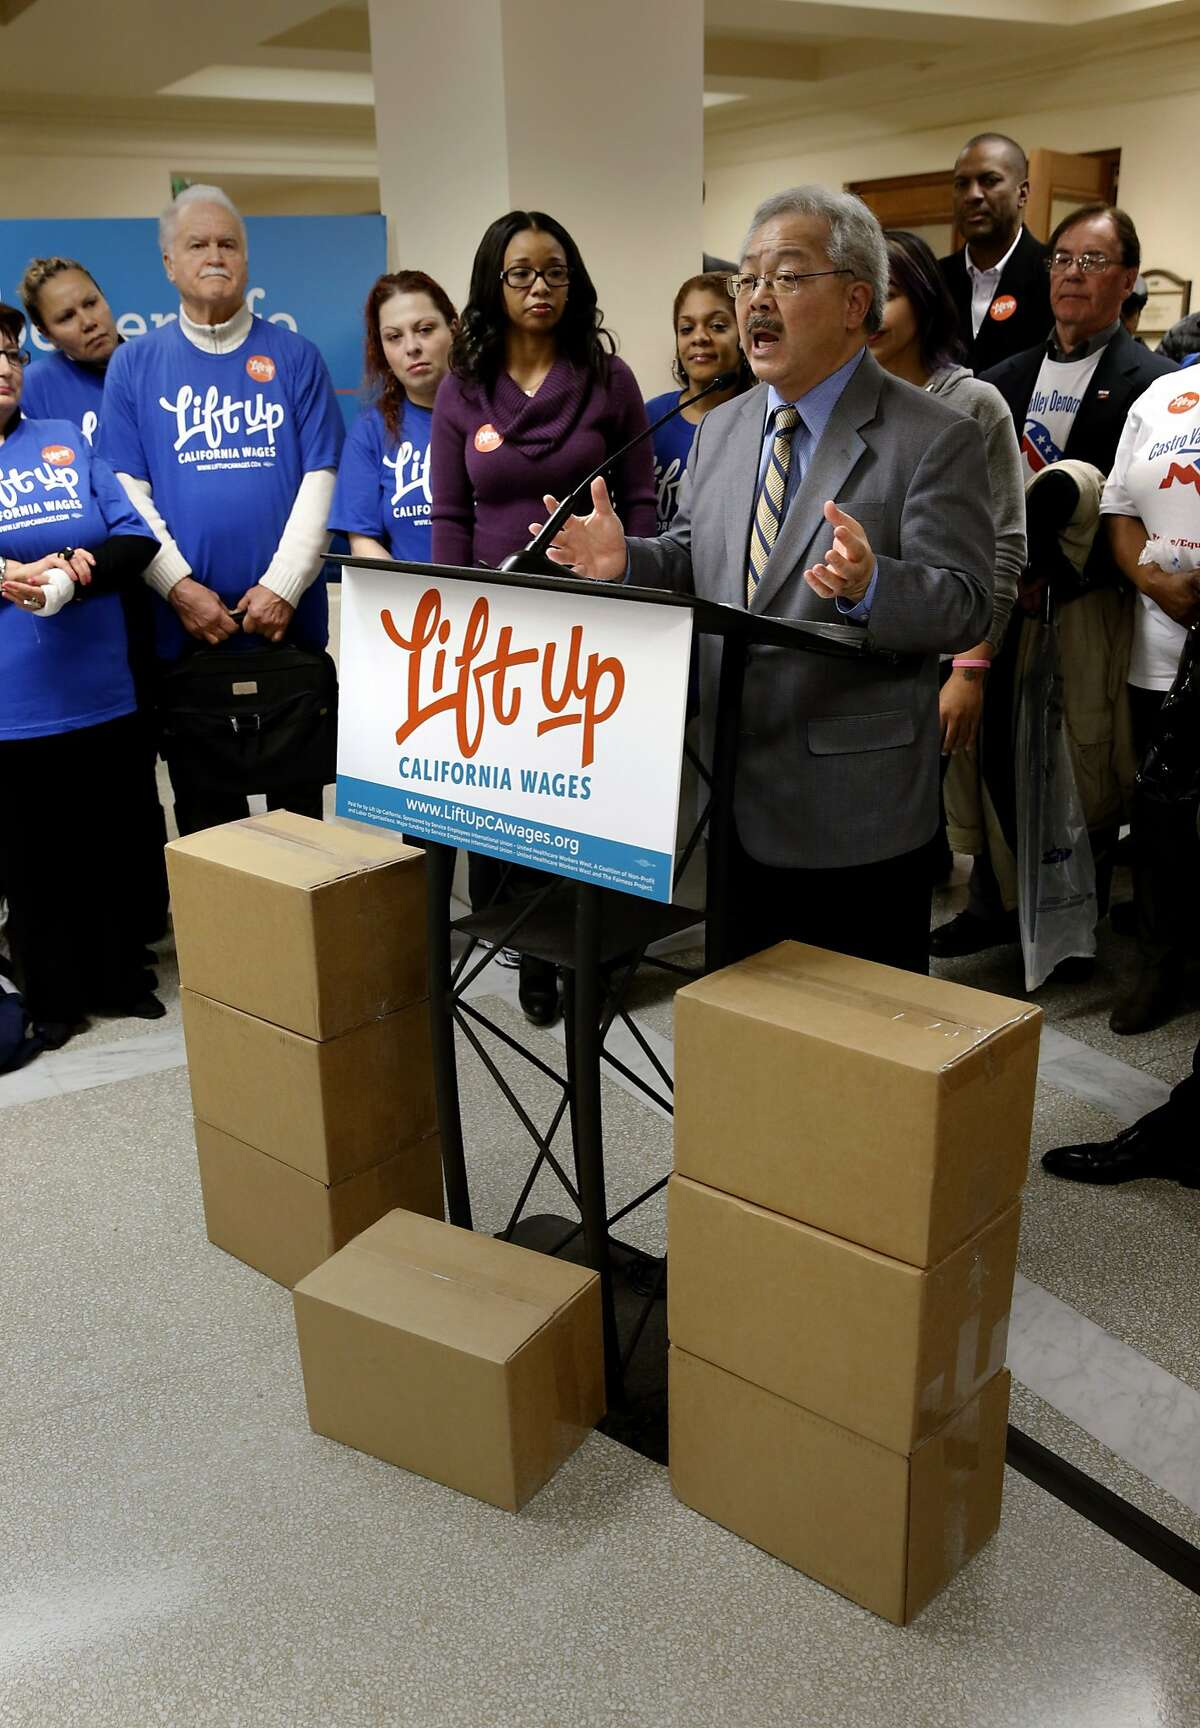 Mayor Ed Lee addresses supporters in front of boxes filled with more than 600,000 voter signatures set for delivery to the San Francisco Department of Elections to qualify the Fair Wage Act of 2016 on the ballot, at City Hall in San Francisco , Calif., on Tues. January 19, 2016,